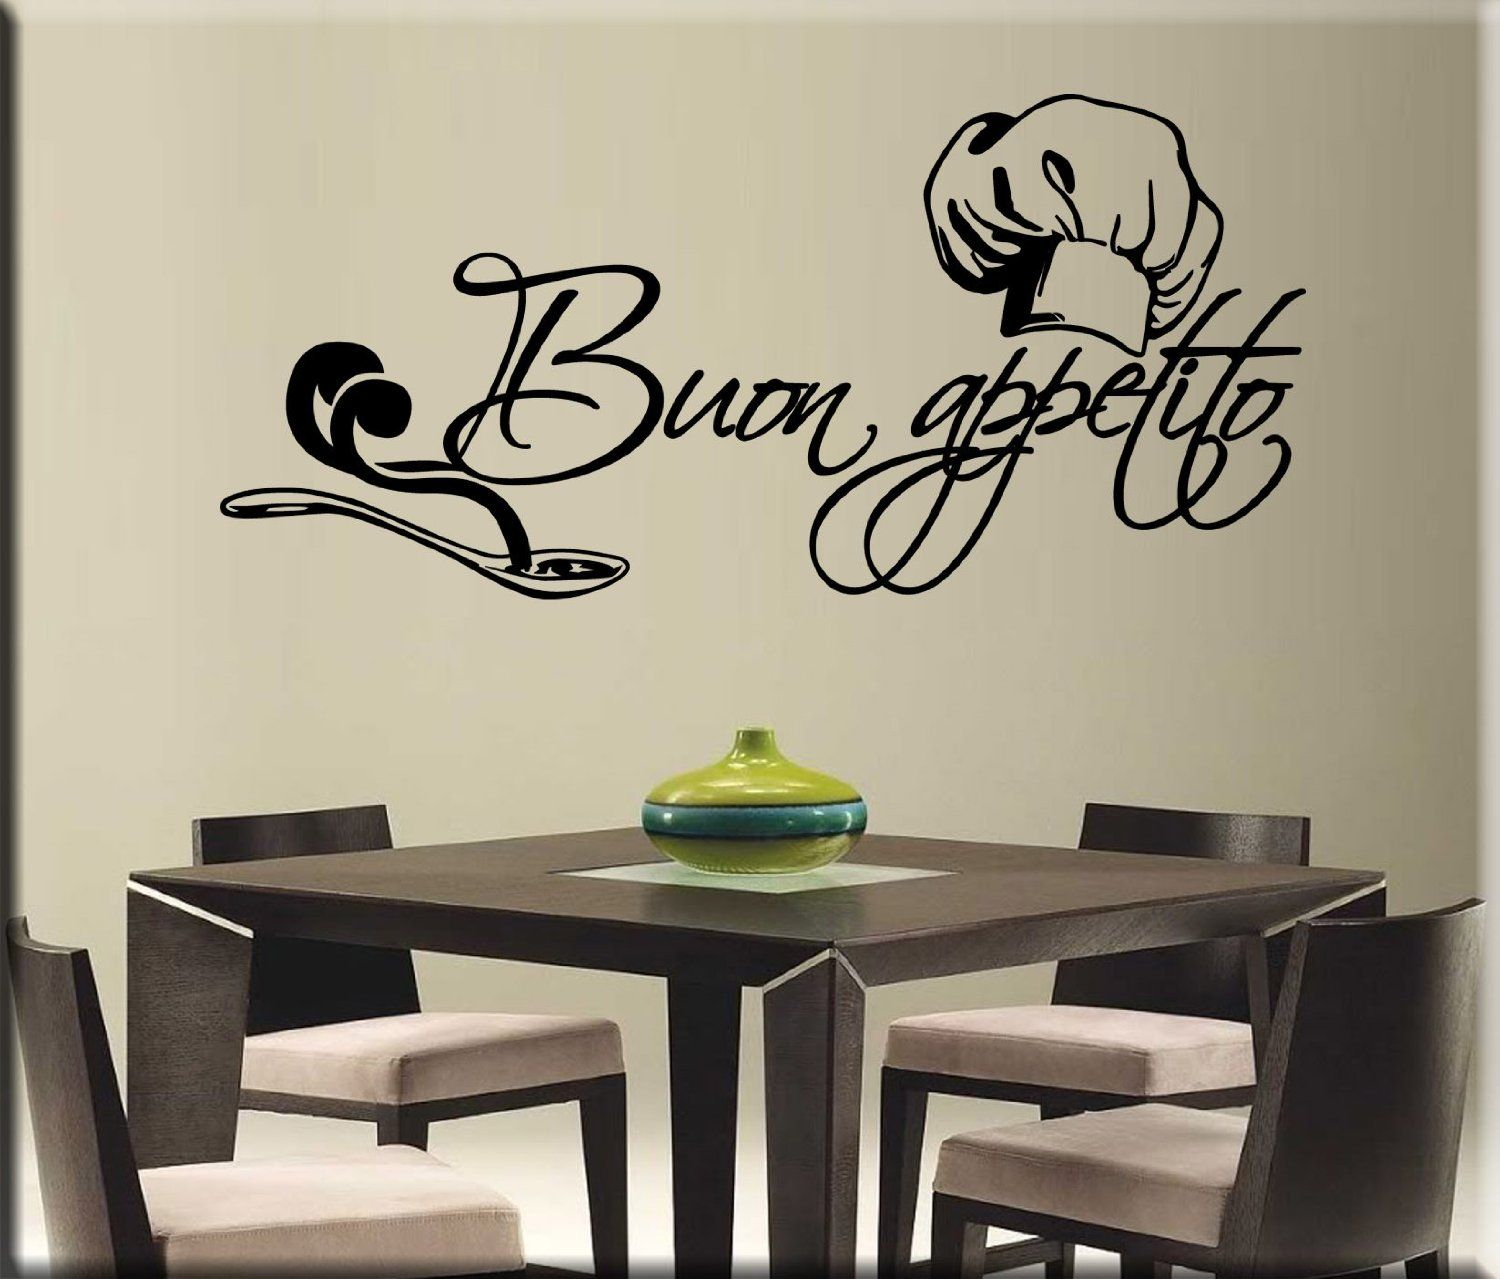 Essebi arredi murali adesivo per arredare wall stickers for Stickers cucina